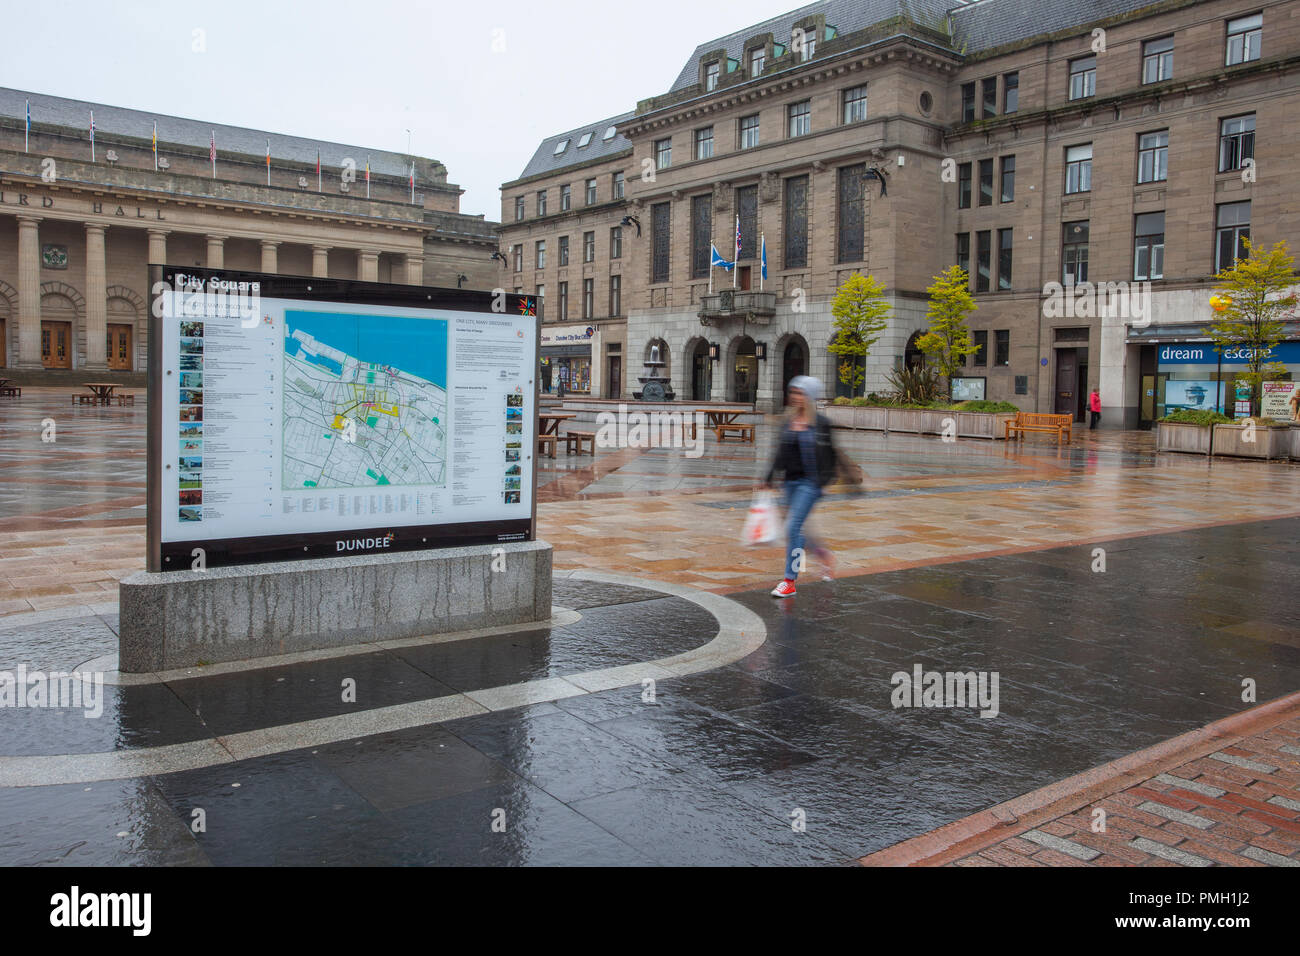 Dundee, Scotland. UK Weather 18/09/2018.  Rainy start to the day in the scottish city centre with heavy rain forecast for later in the day.  Credit; MediaWorldImages/AlamyLiveNews - Stock Image